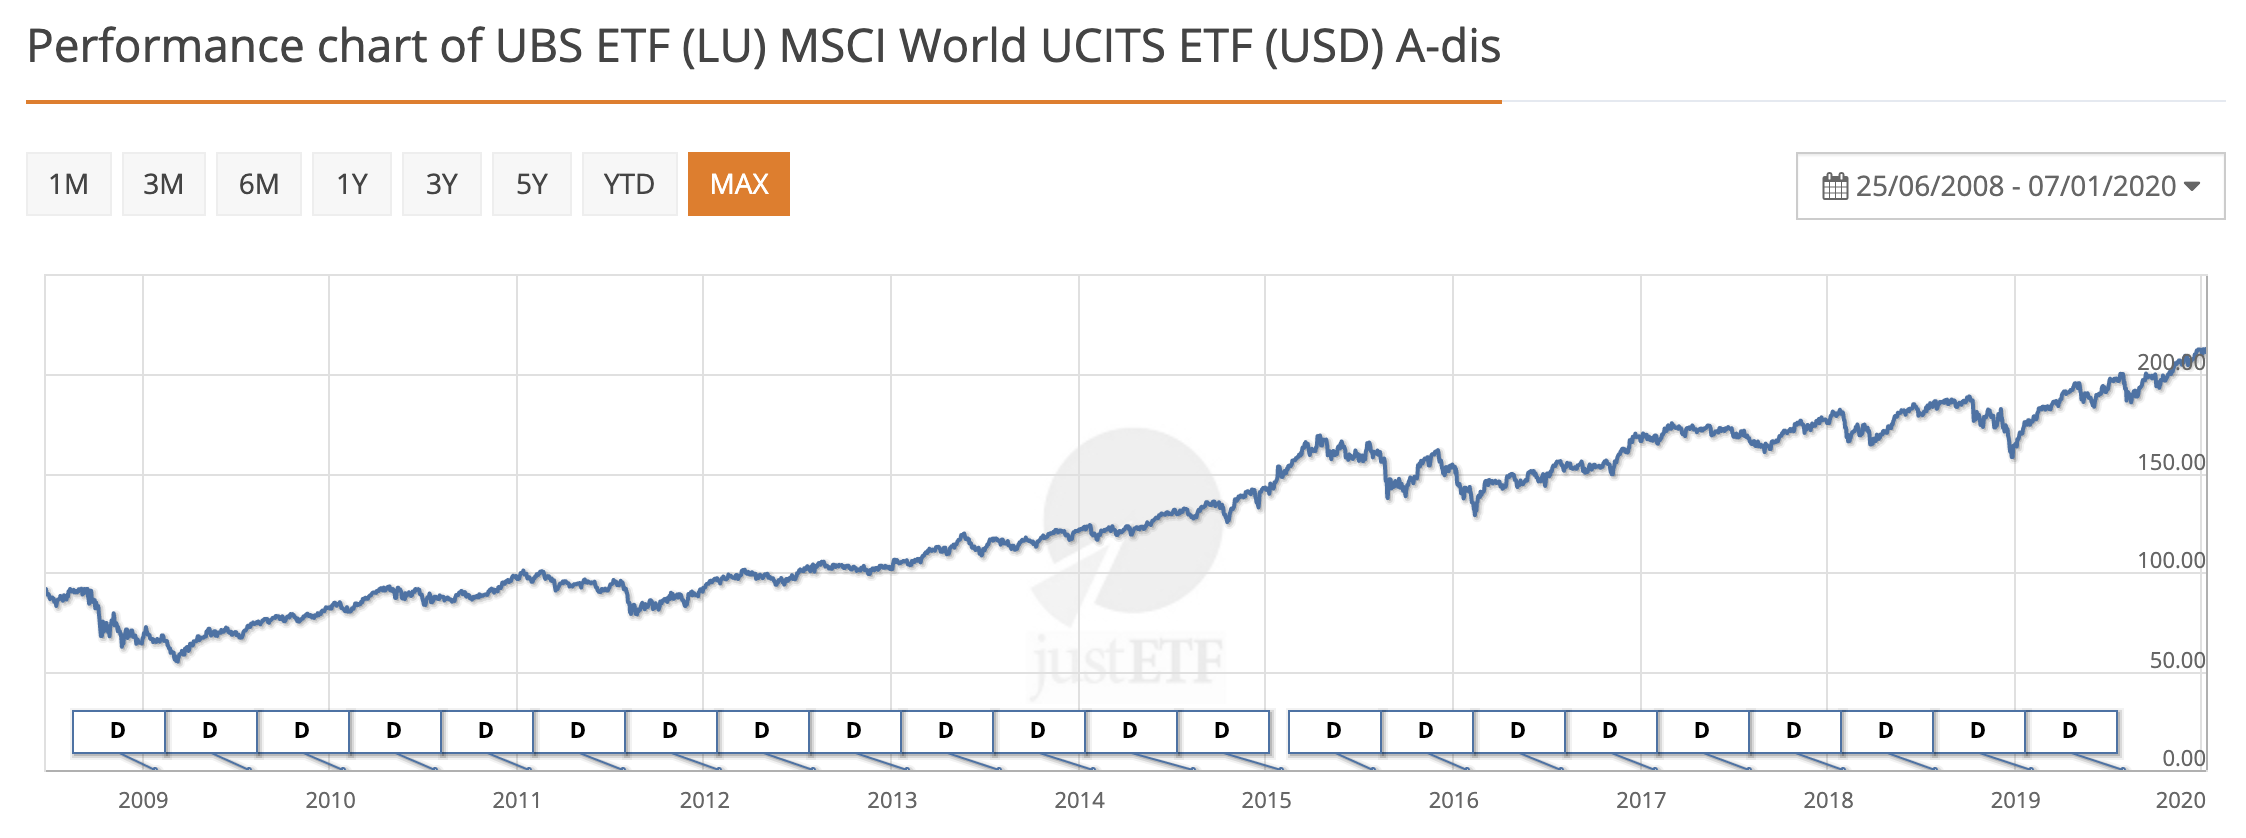 Performance chart of UBS ETF (LU) MSCI World UCITS ETF (USD) A-dis